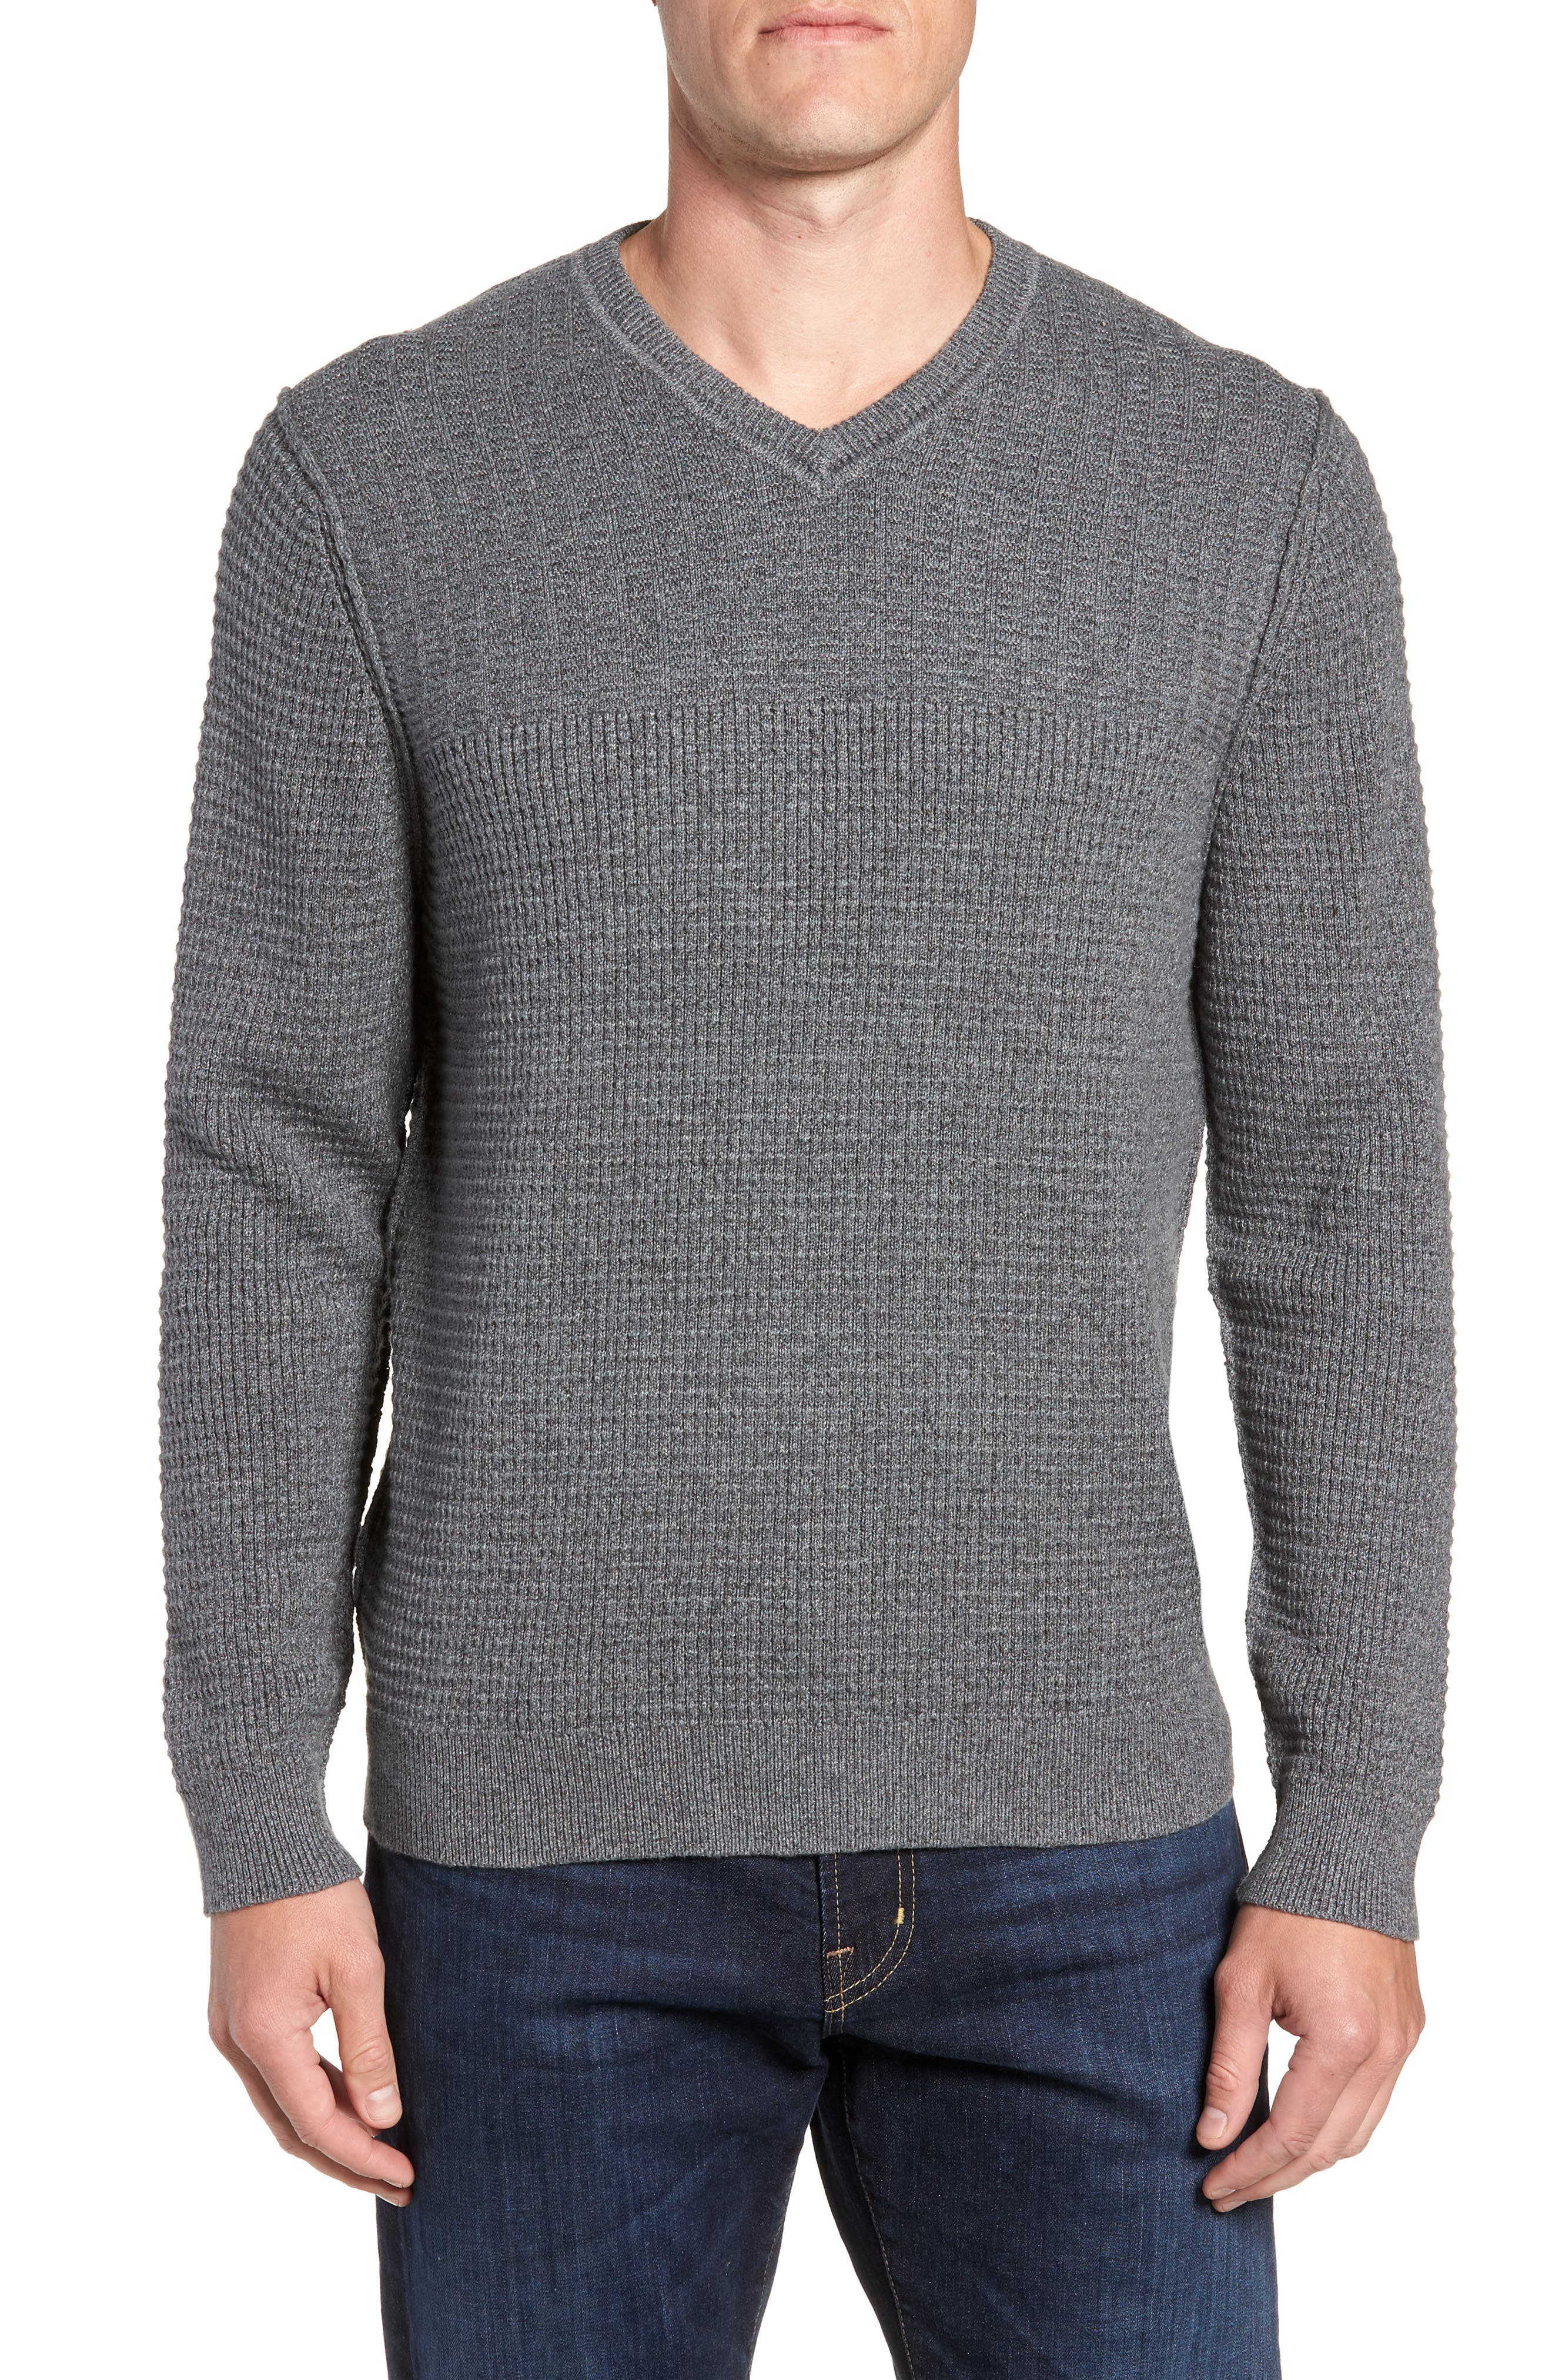 TOMMY BAHAMA Isidro V-Neck Regular Fit Sweater, Main, color, CAVE